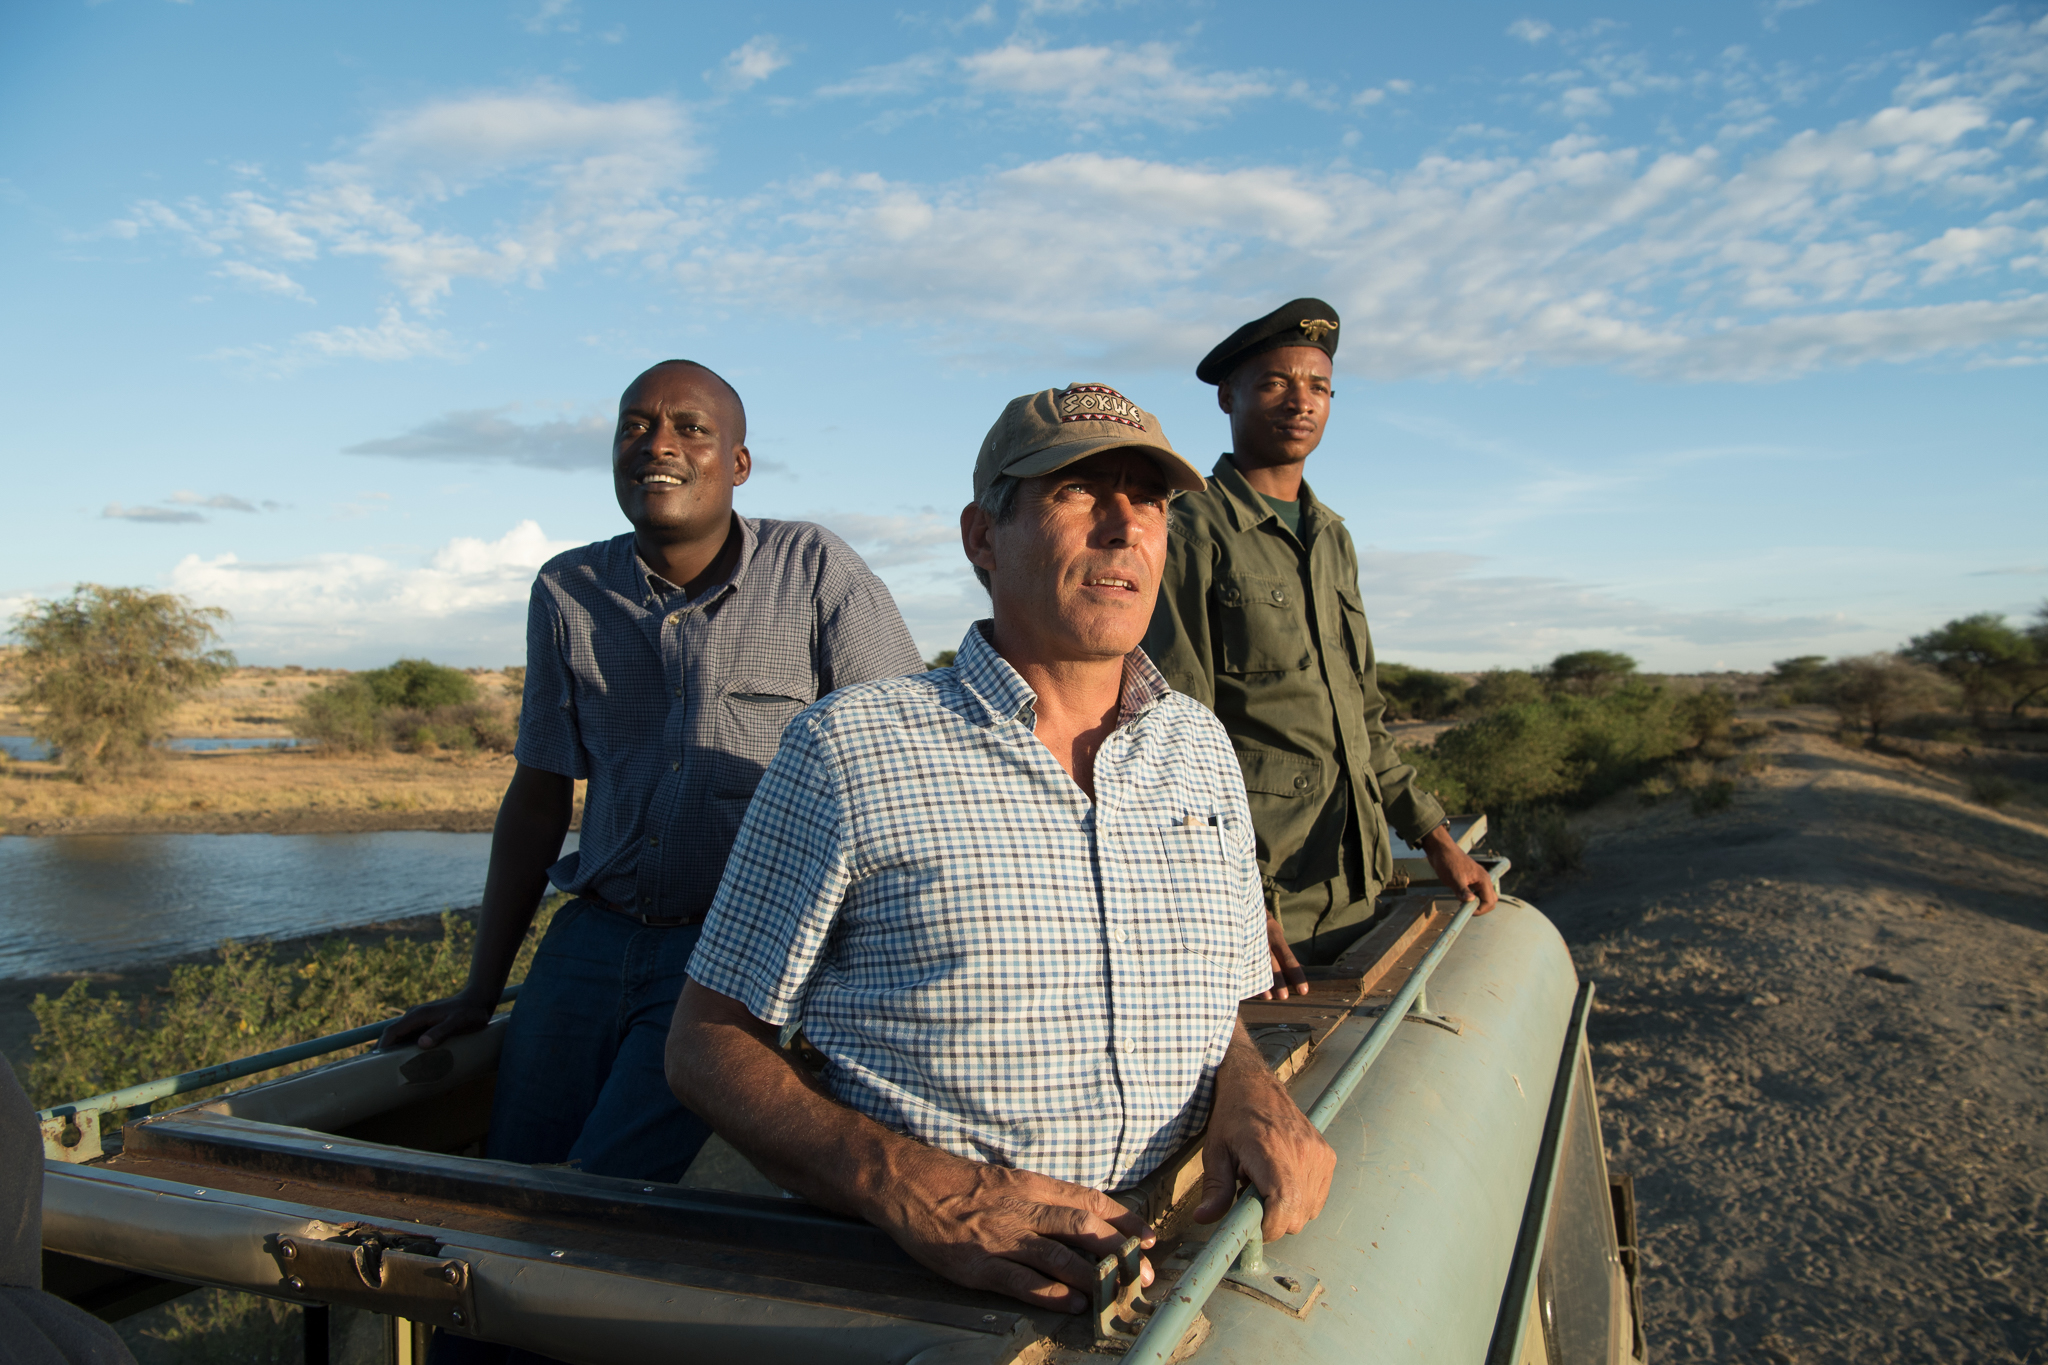 Damian Bell, Honeyguide's executive director (center), Leonard Charles (right), and Zungu Willy (left), watch elephants at Manyara Ranch, set against the towering backdrop of the Great Rift Valley escarpment.